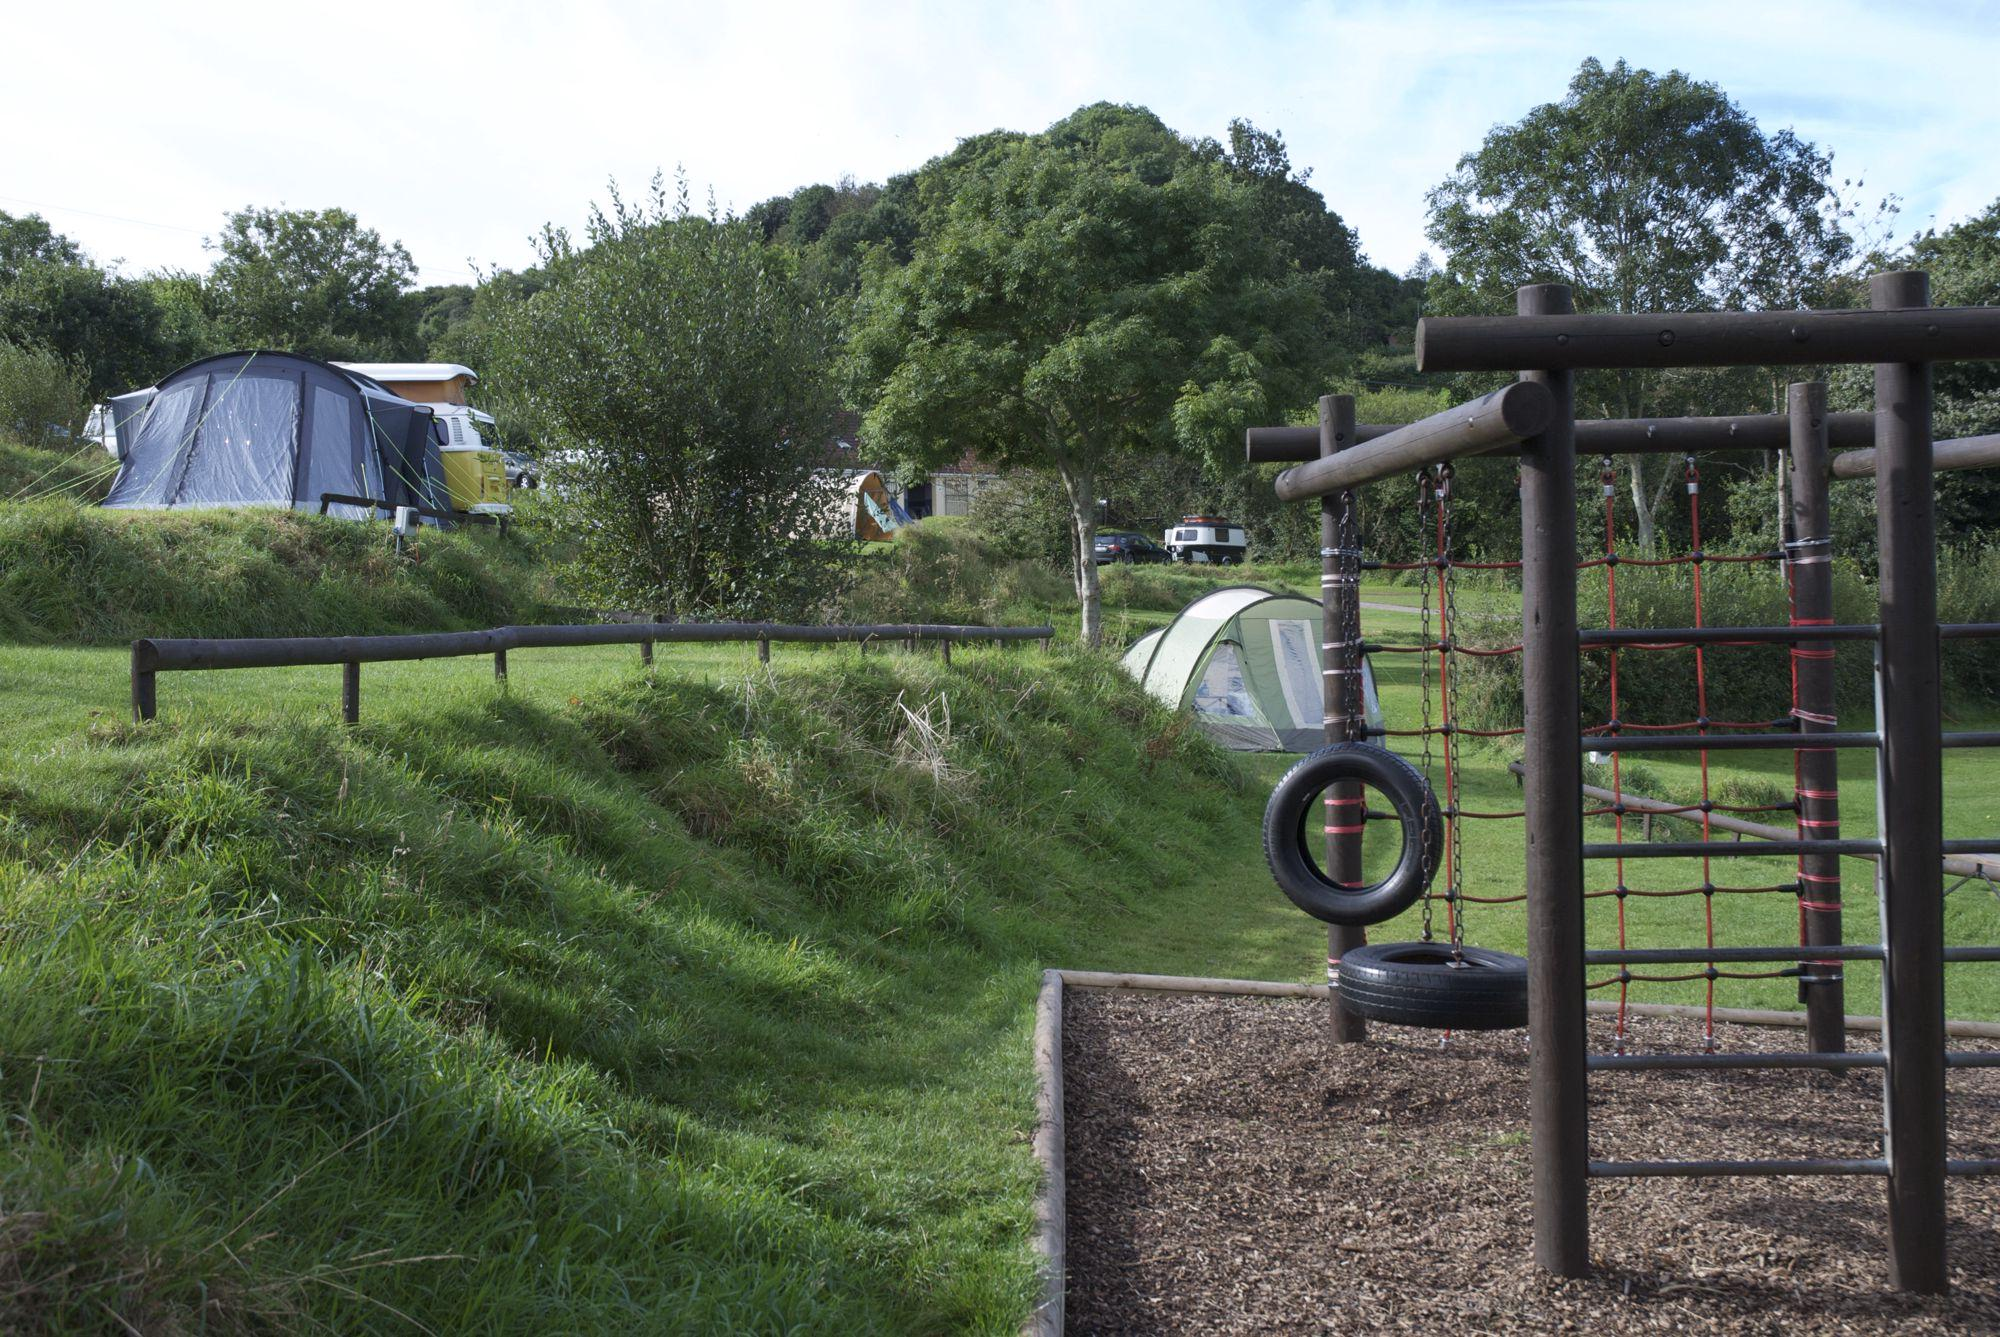 Seaton Camping | Best campsites in Seaton, Devon